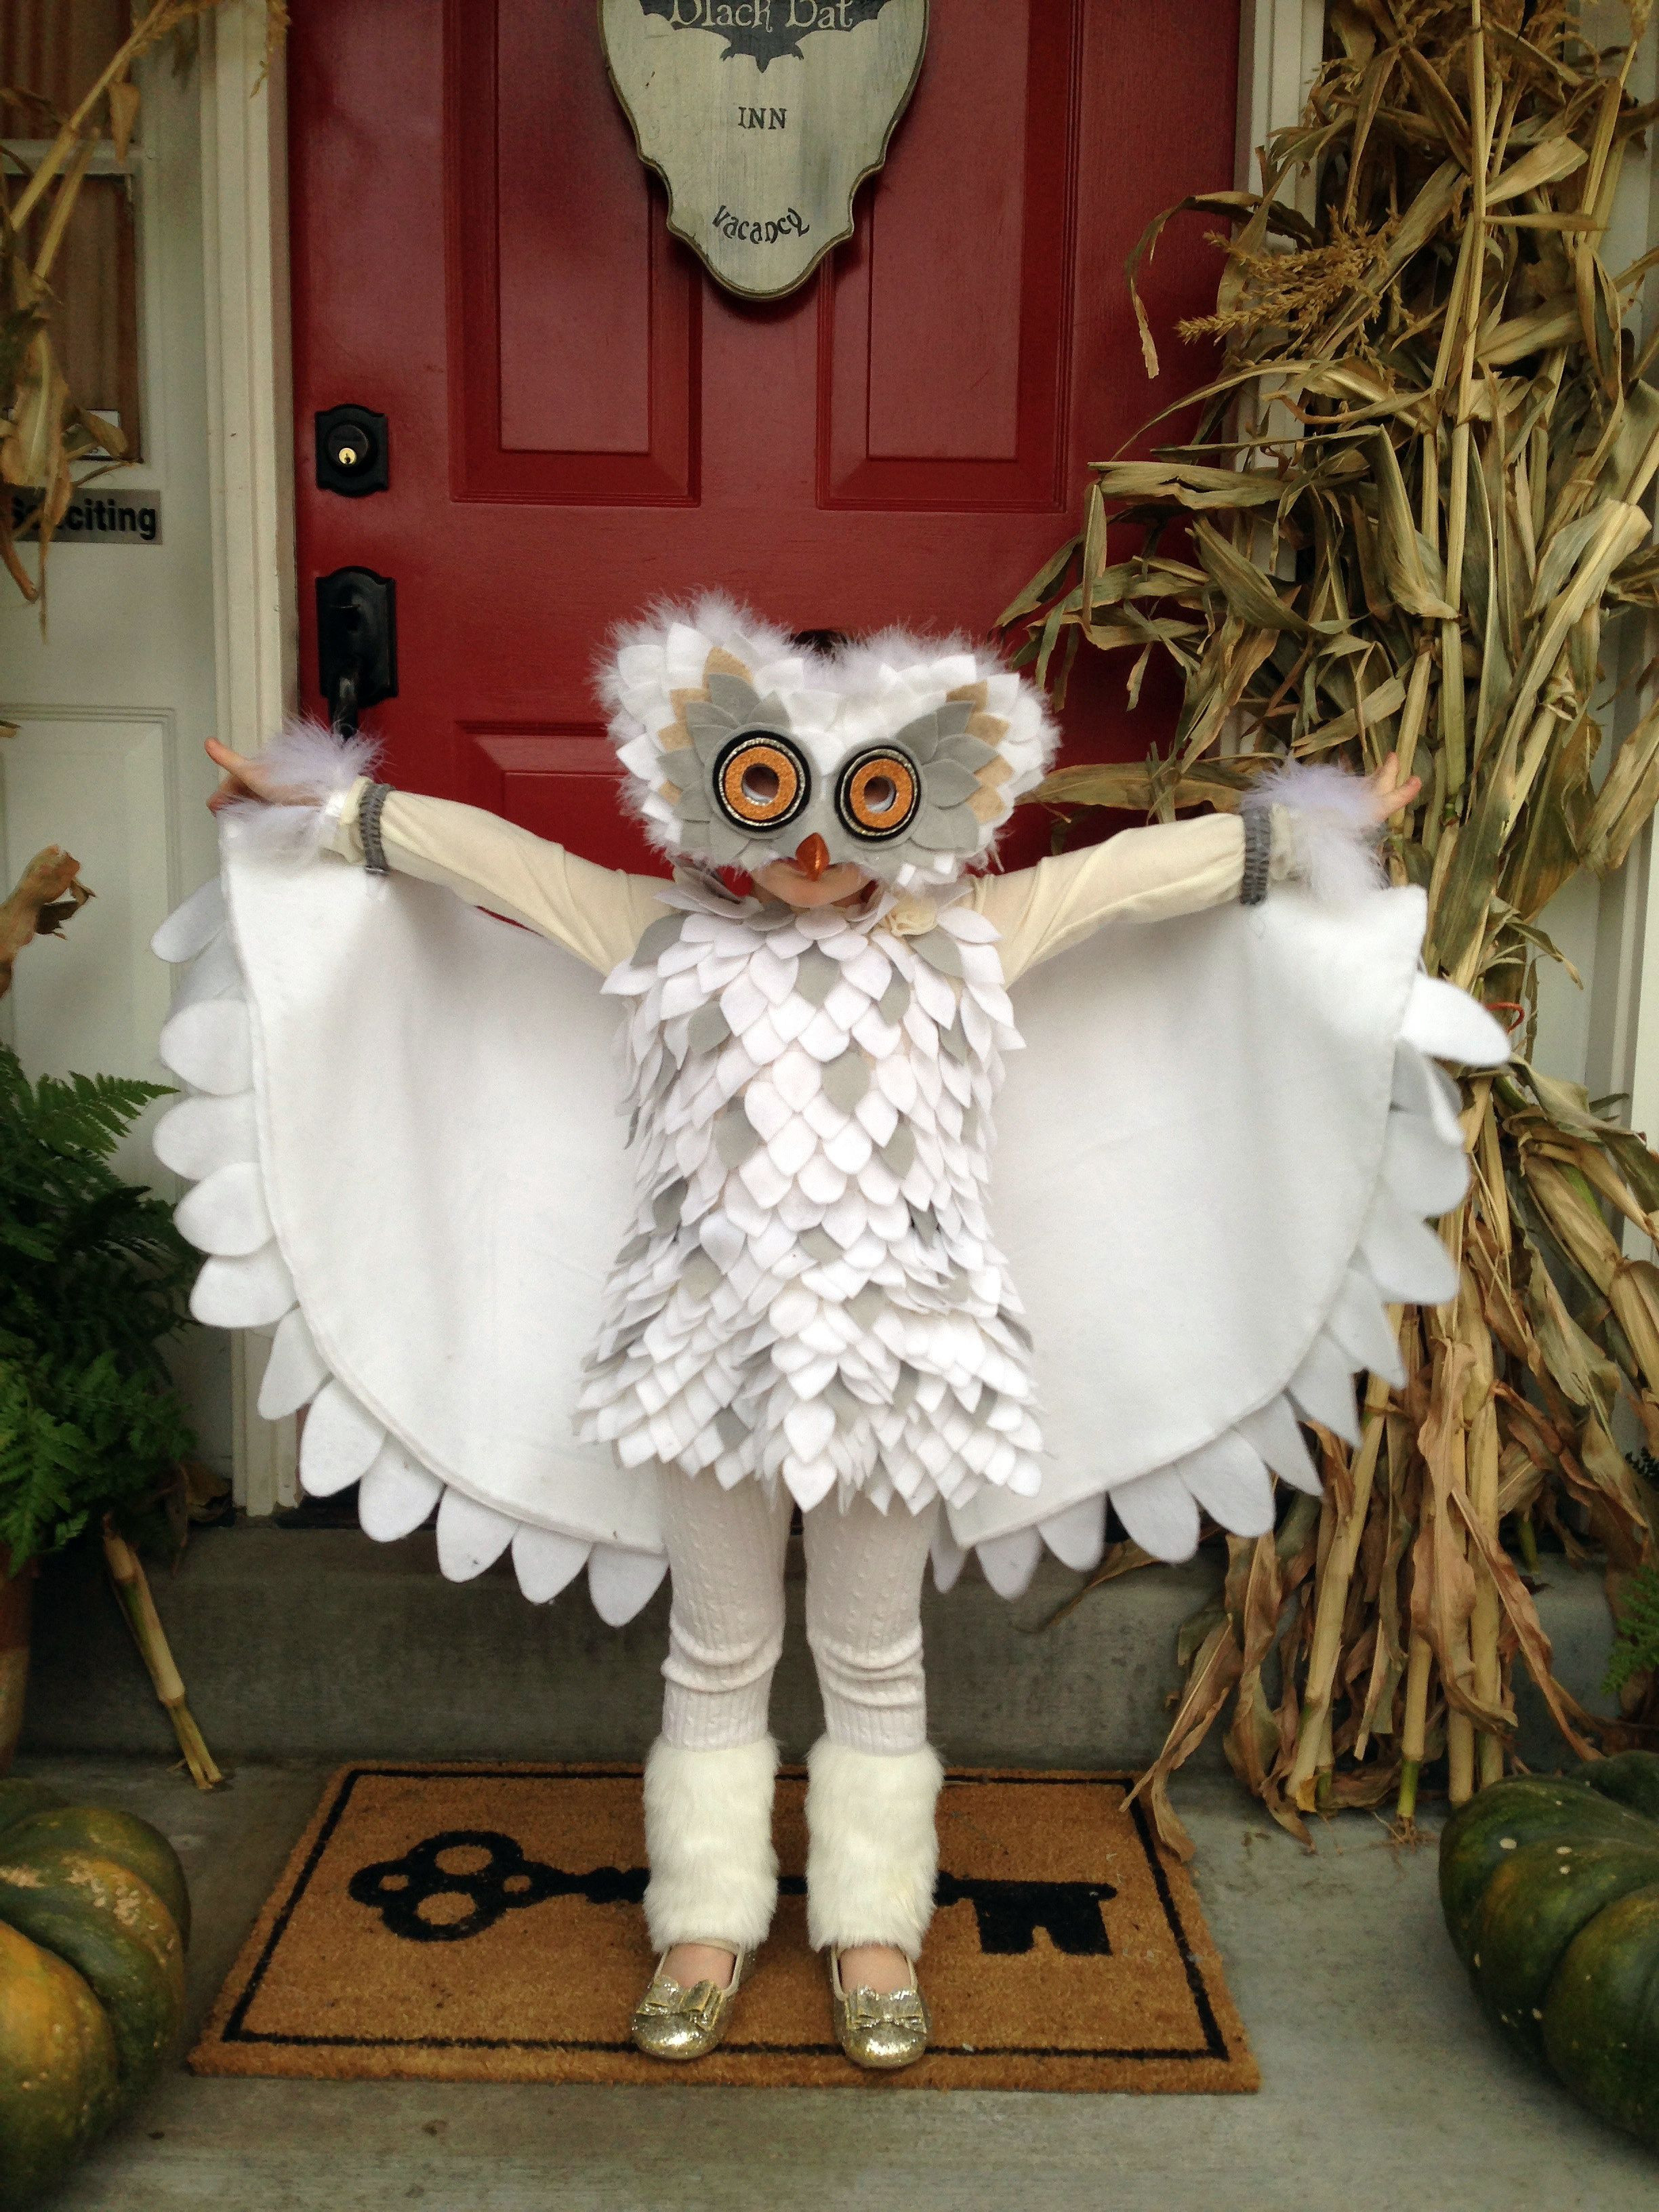 Best ideas about DIY Owl Costumes . Save or Pin Best 25 Owl costume diy ideas on Pinterest Now.